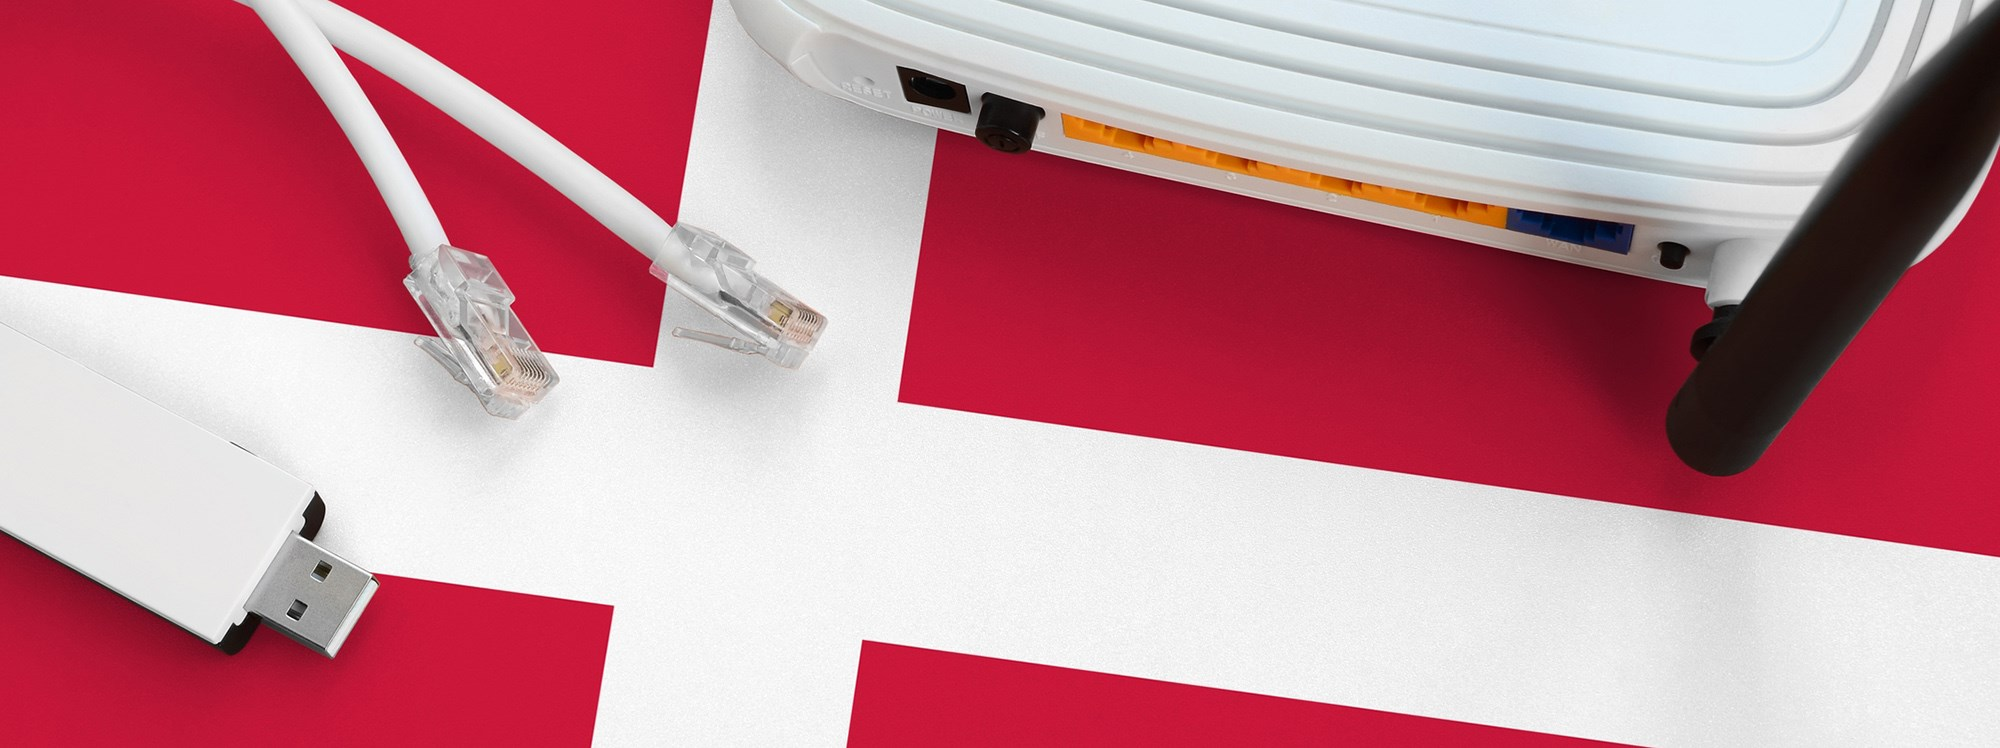 Danish flag and internet equipment.Photo: Mykhailo Polenok/Dreamstime.com